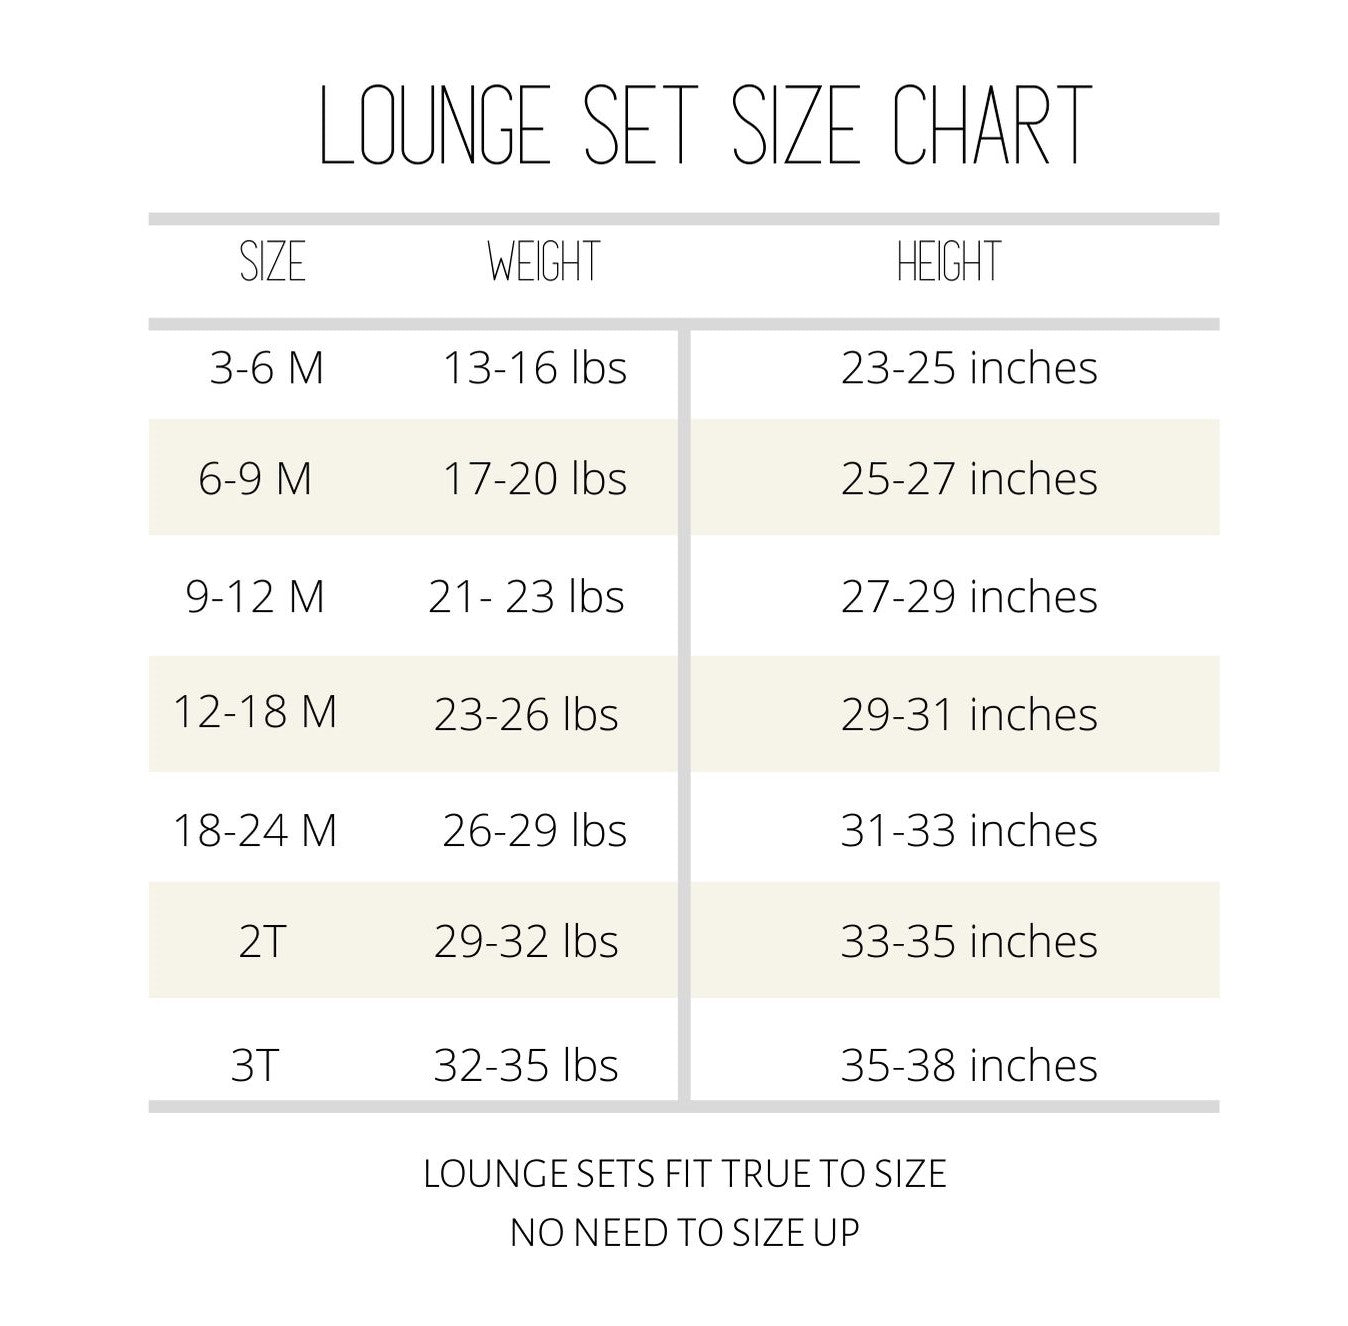 lounge set sizing information